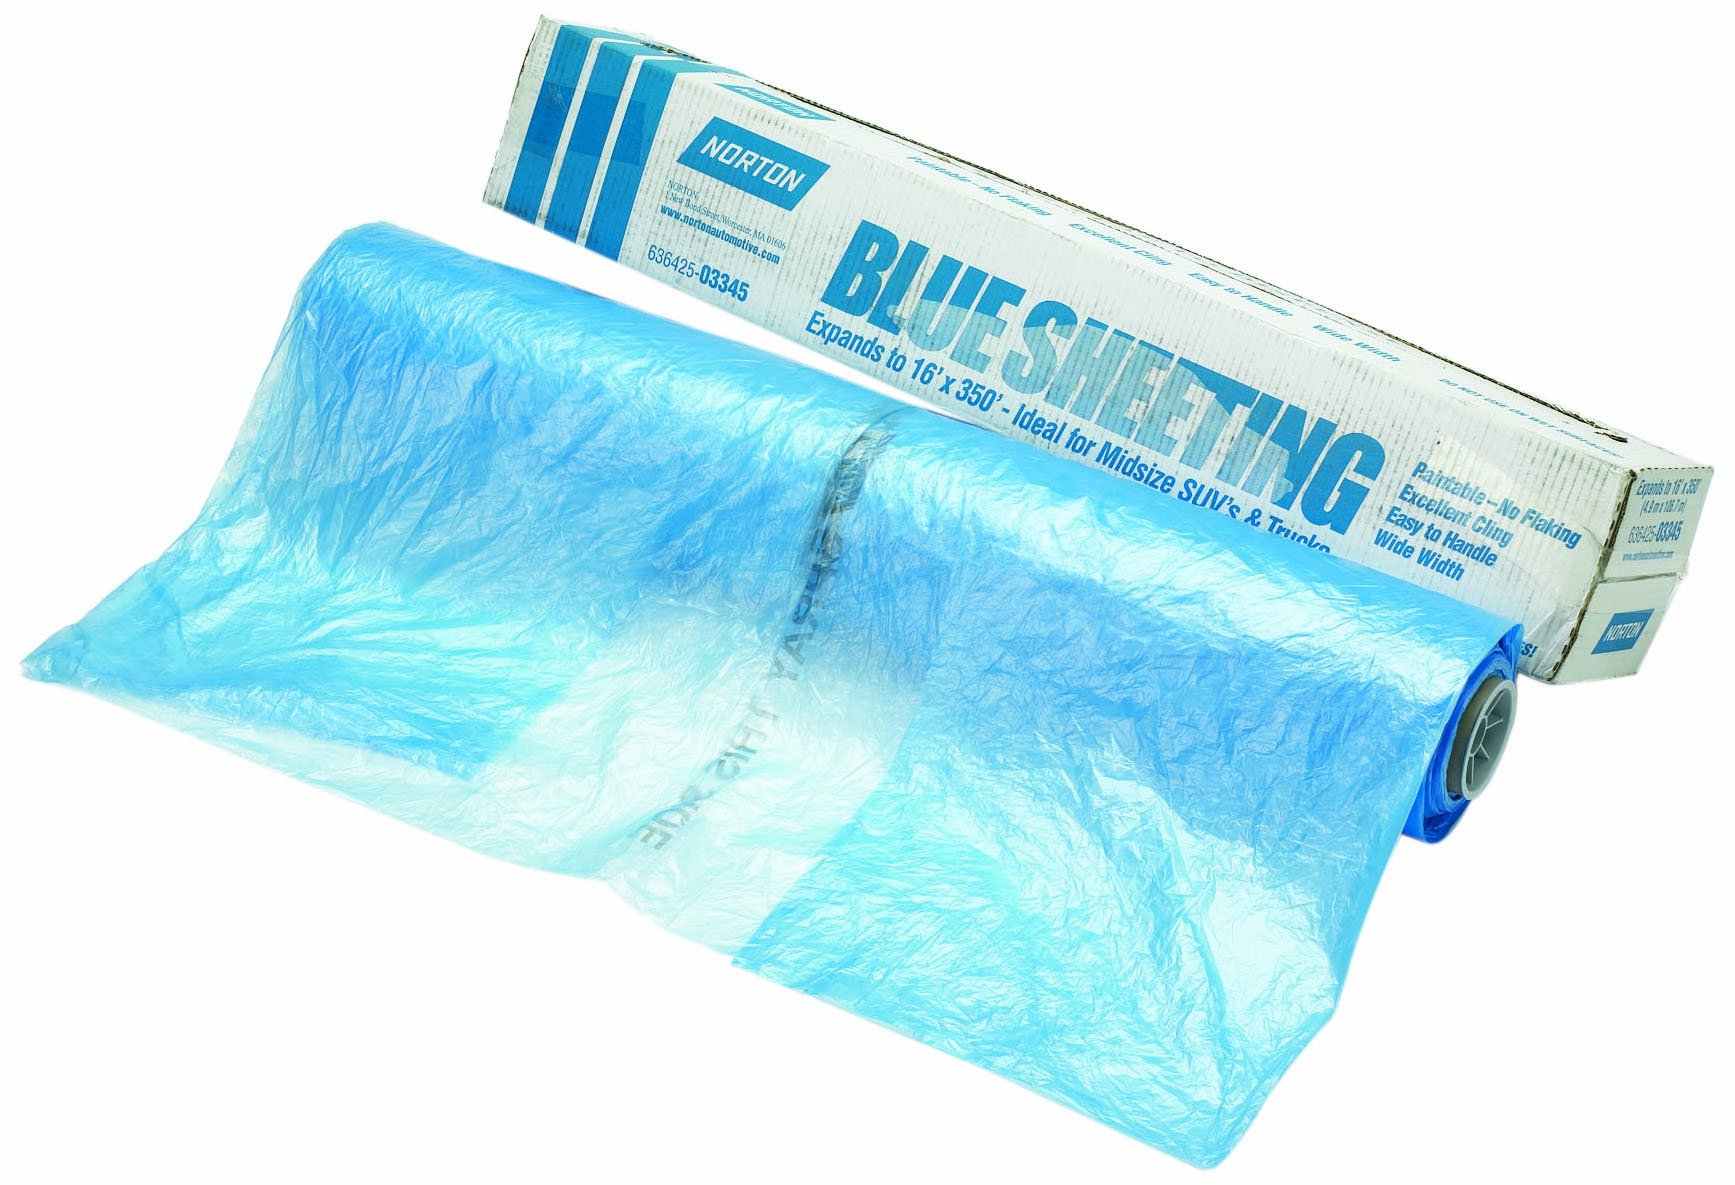 Norton 636425-03345 Blue 16' x 350' Sheeting